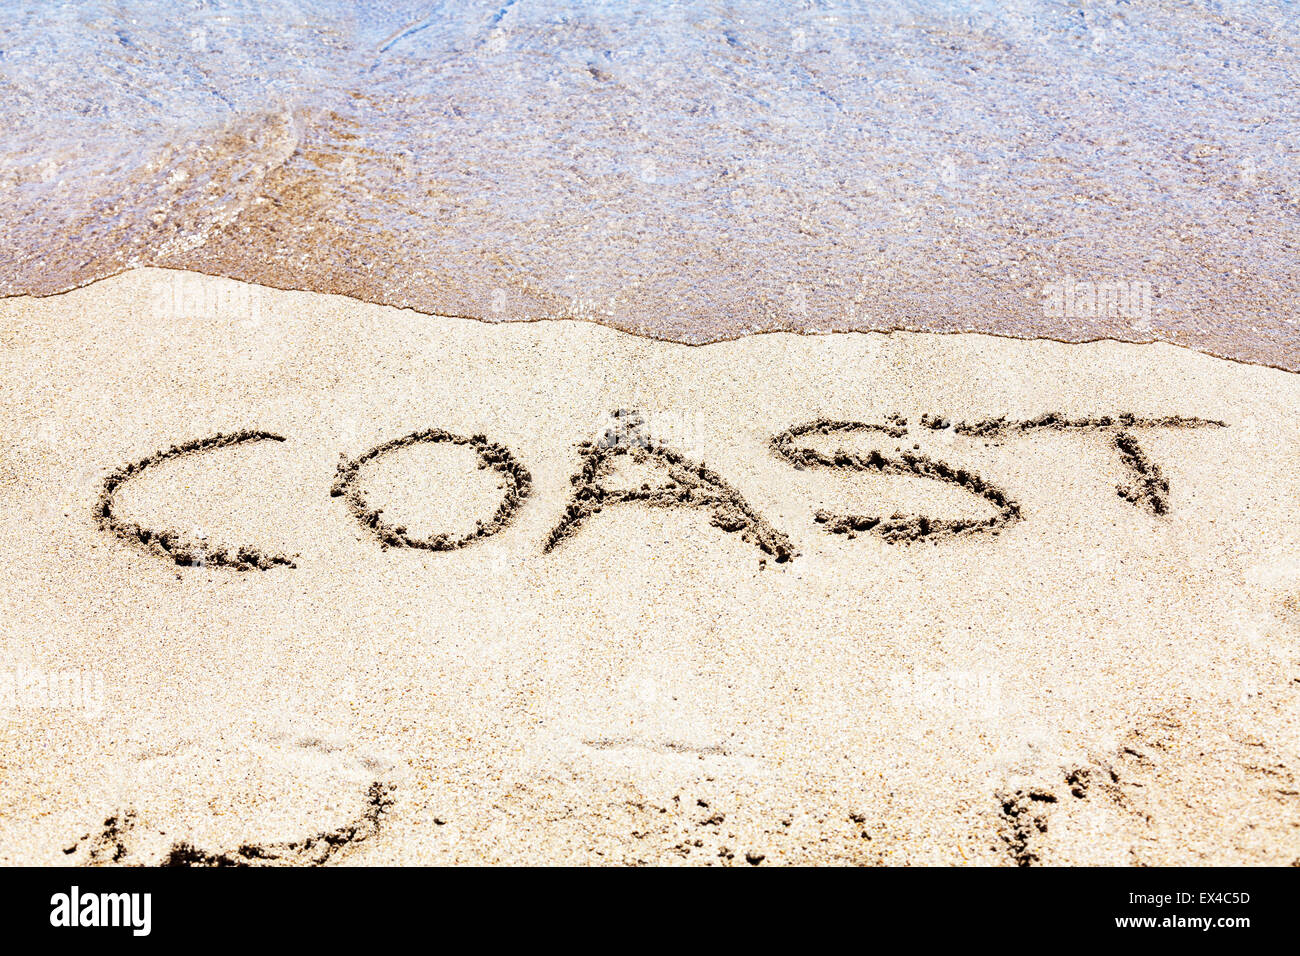 coast coastline coastal word in sand written on beach sea fun resort seas coastlines holidays vacations trips trip - Stock Image